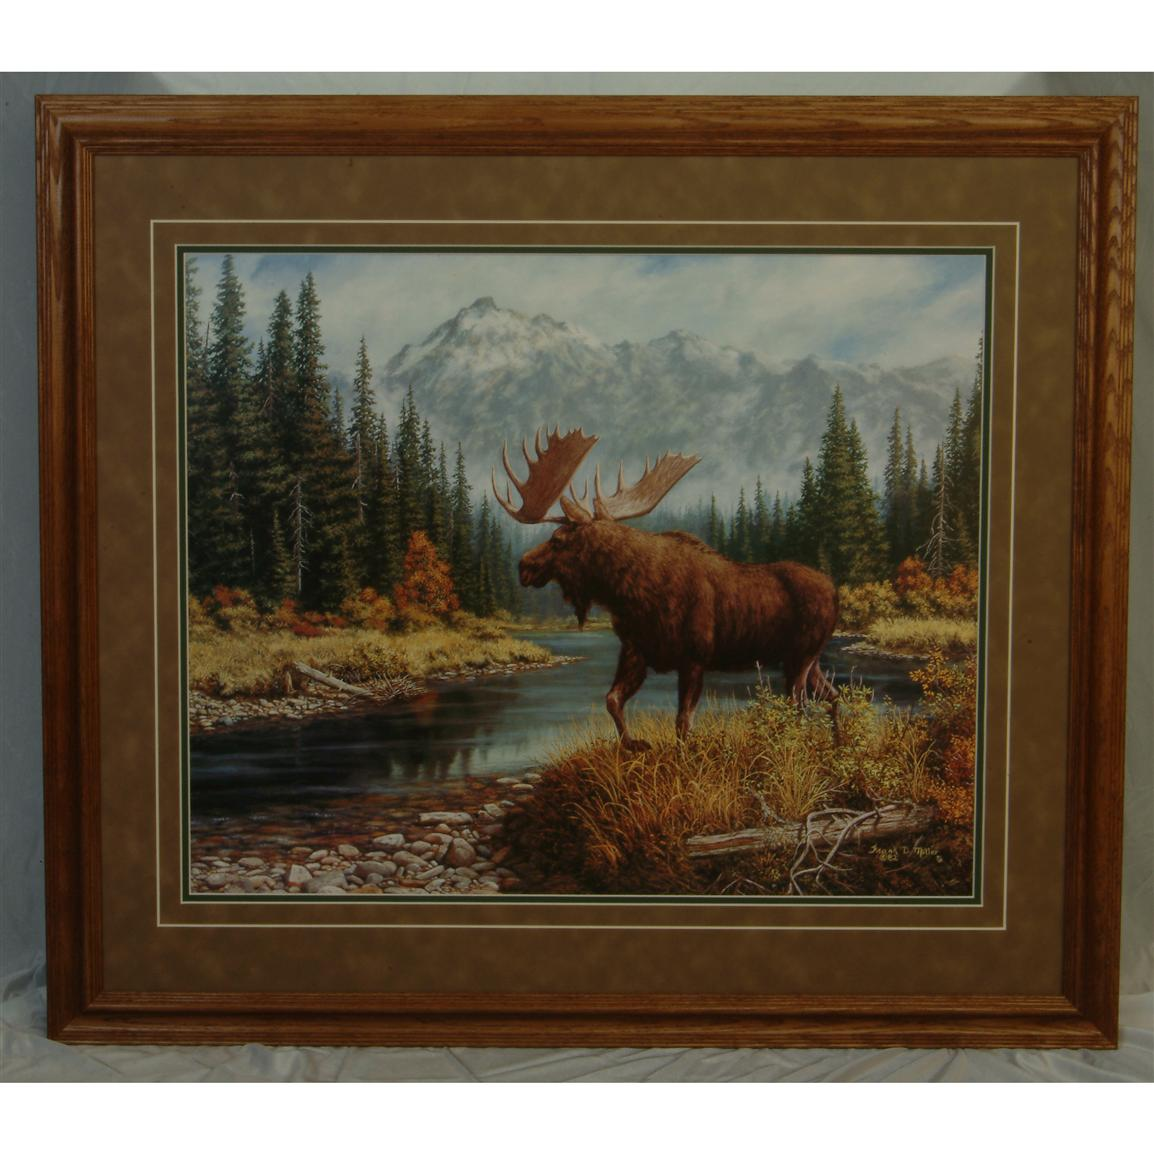 High Mountain Peace Framed Art By Frank D Miller 127765 Wall Art At Sportsman 39 S Guide